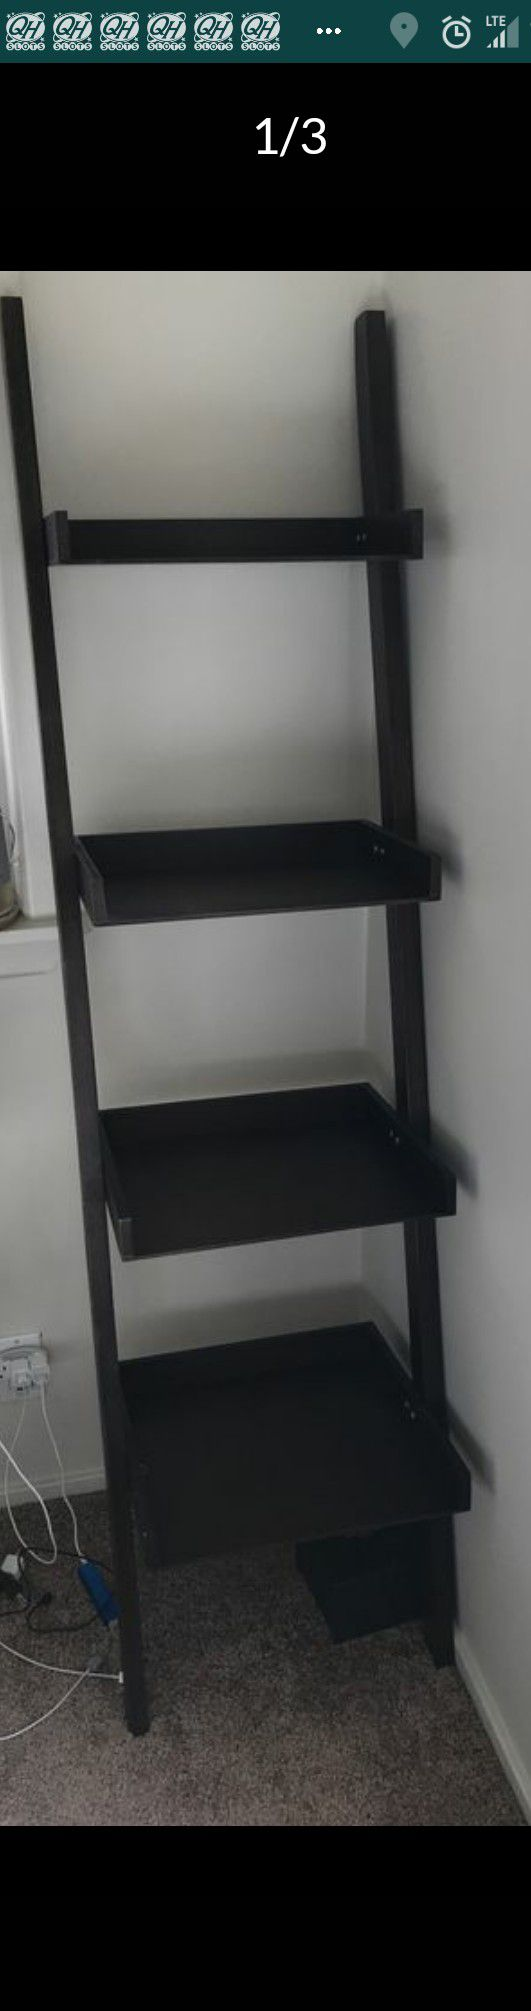 4 hang racks used for clothes, purses etc. $20each selling on ebay for $110 each.